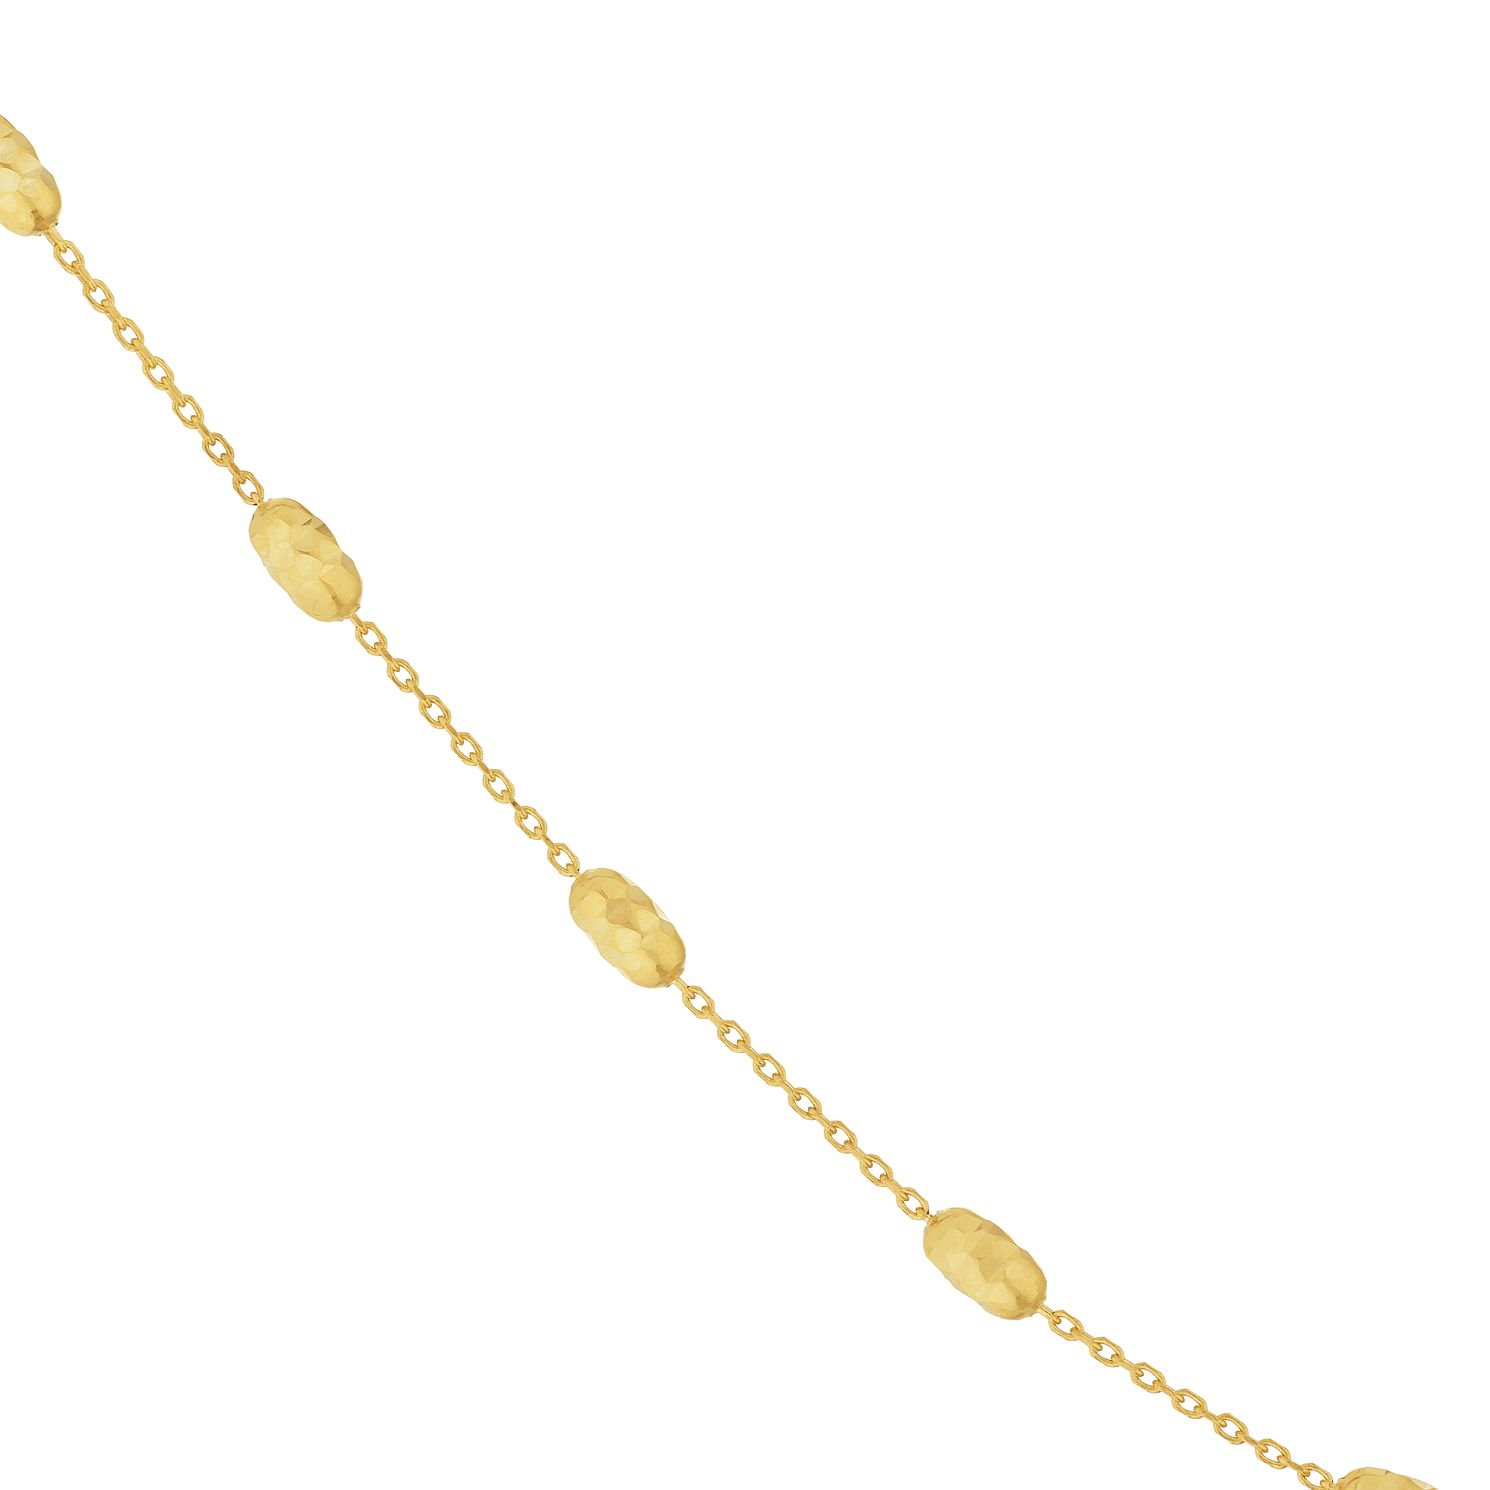 9ct Yellow Gold Beaded Chain Necklace - Product number 9743057